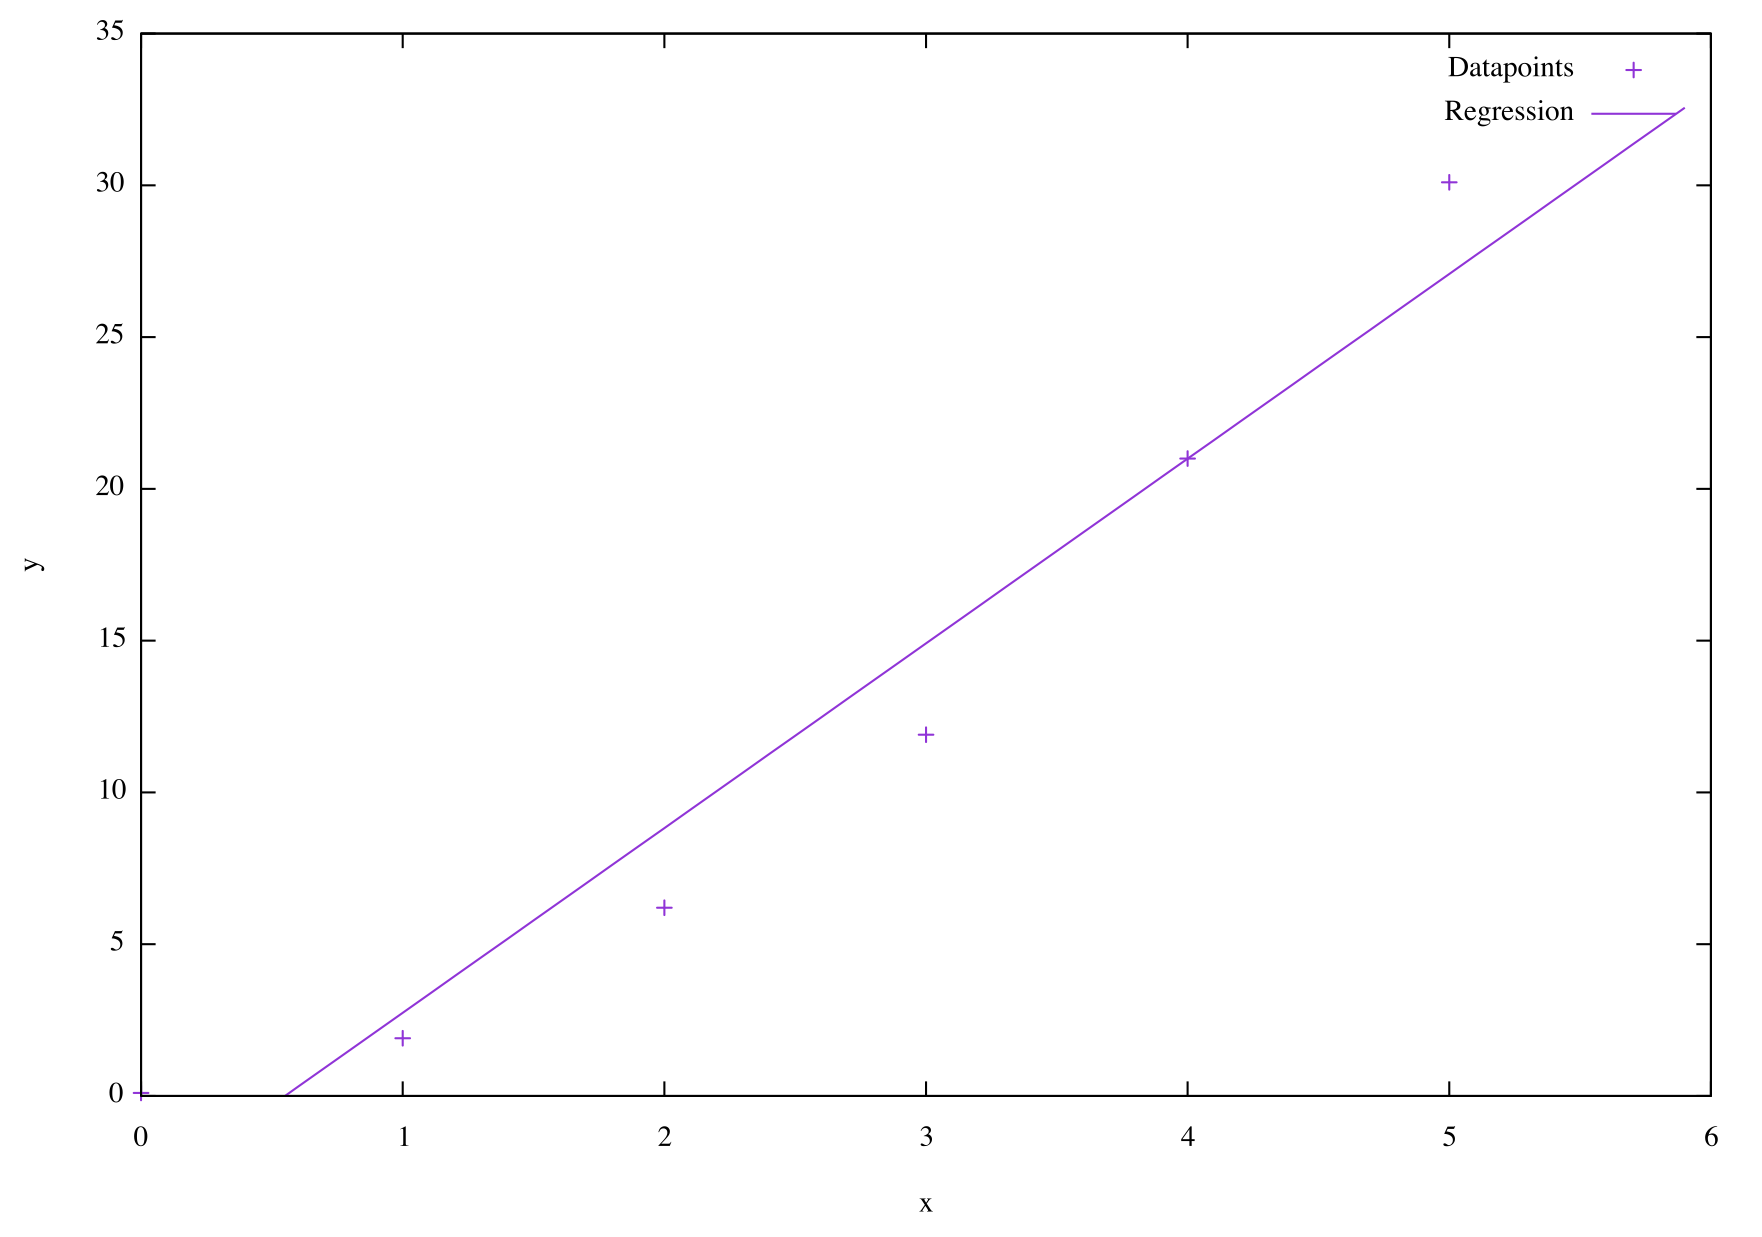 Straight line linear regression